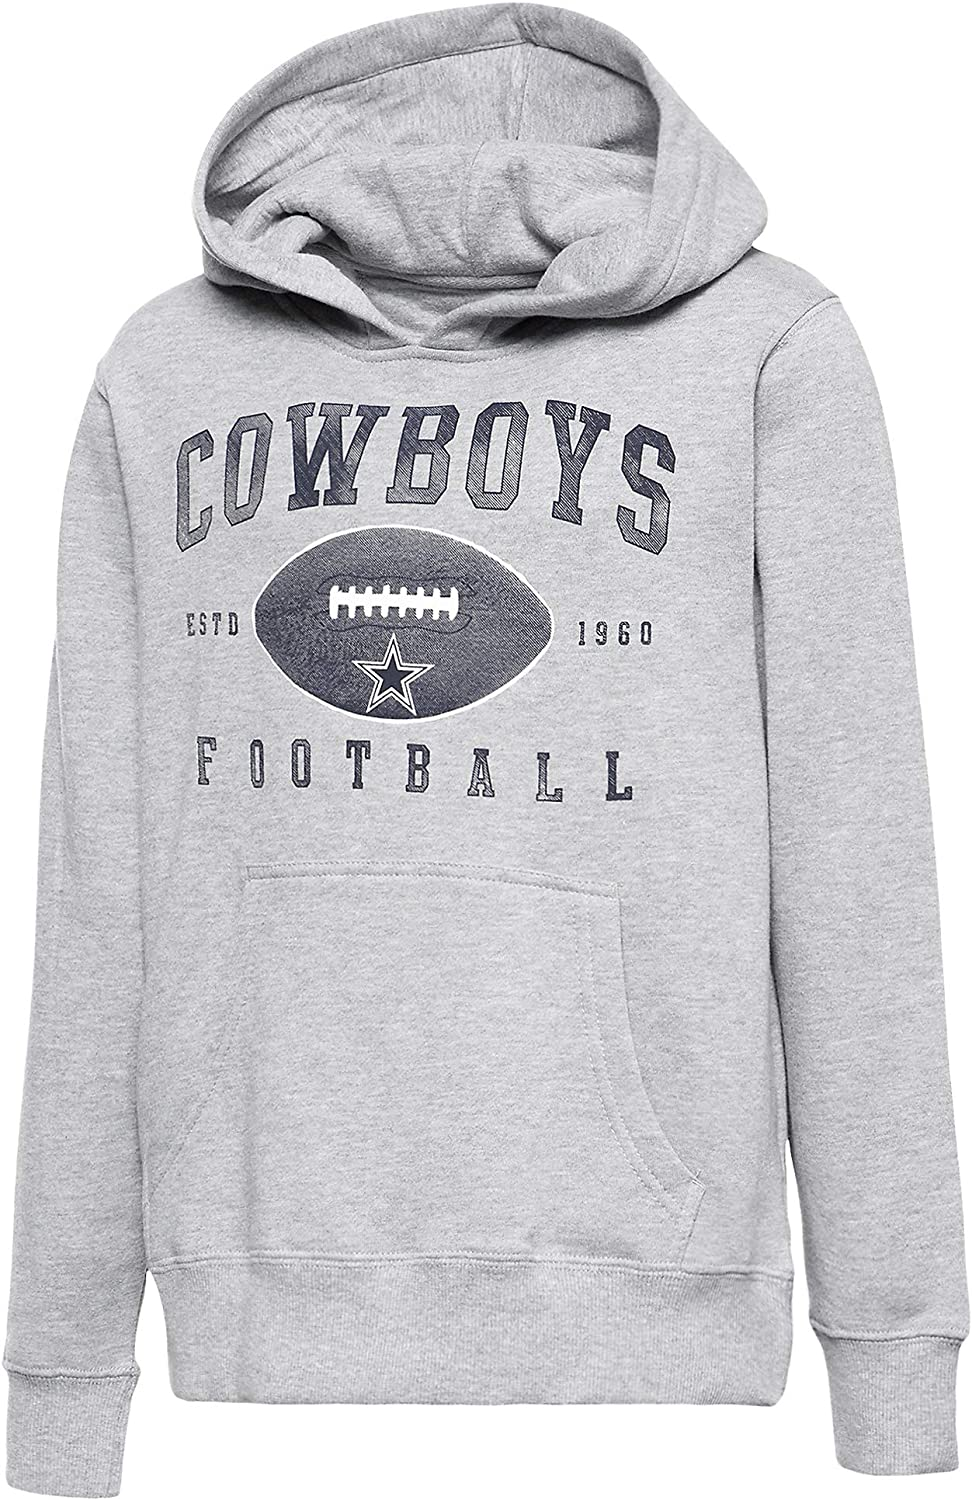 dallas cowboys youth sweatshirt